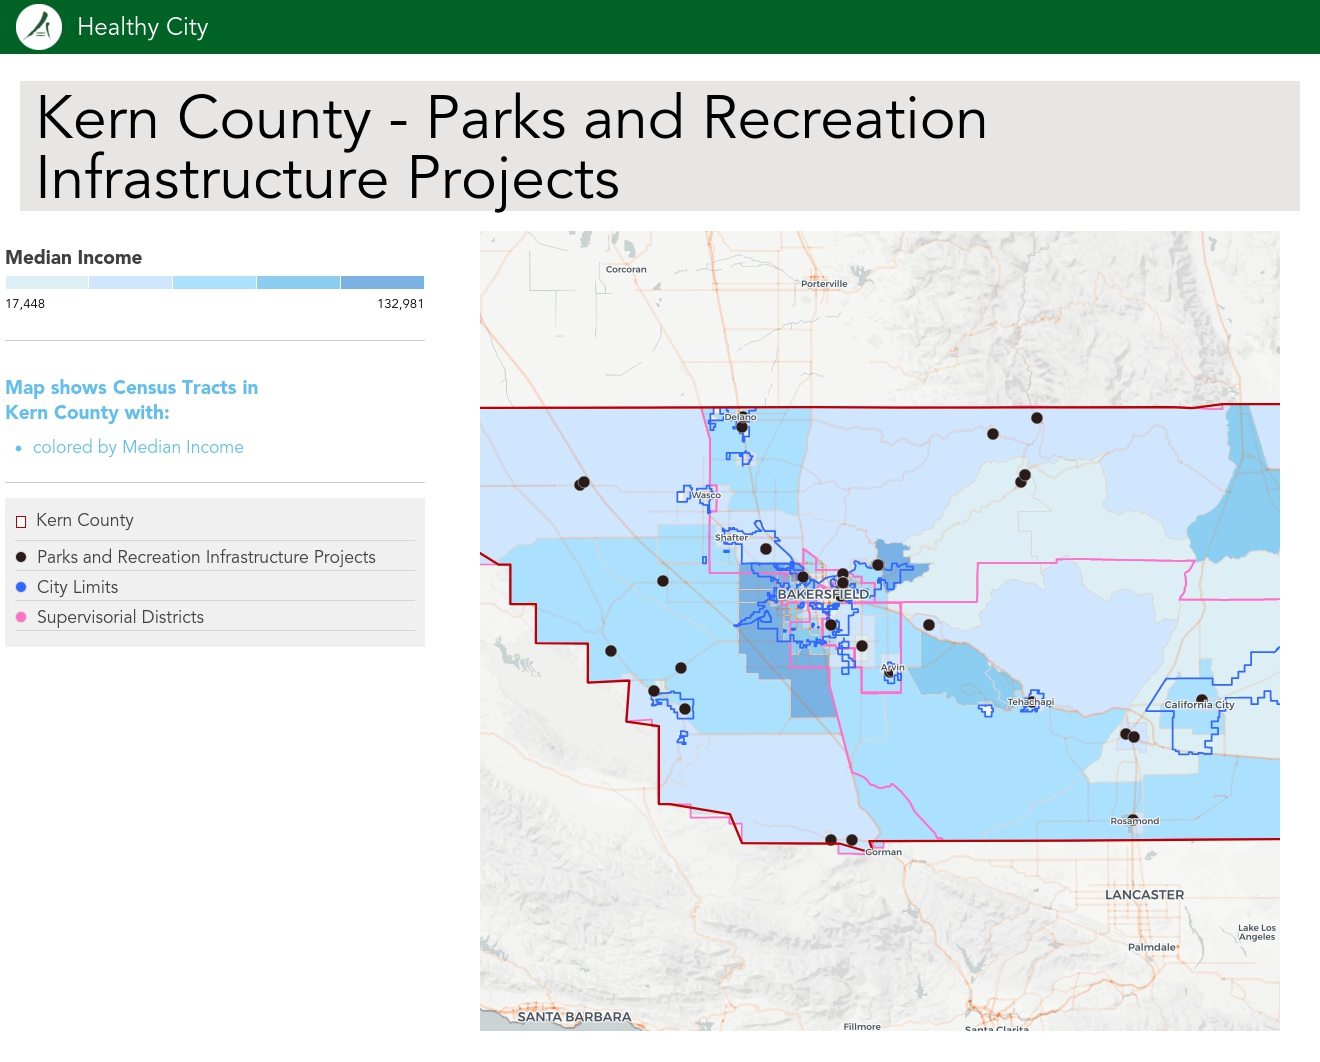 Healthy City Maps - Kern County - Parks and Recreation